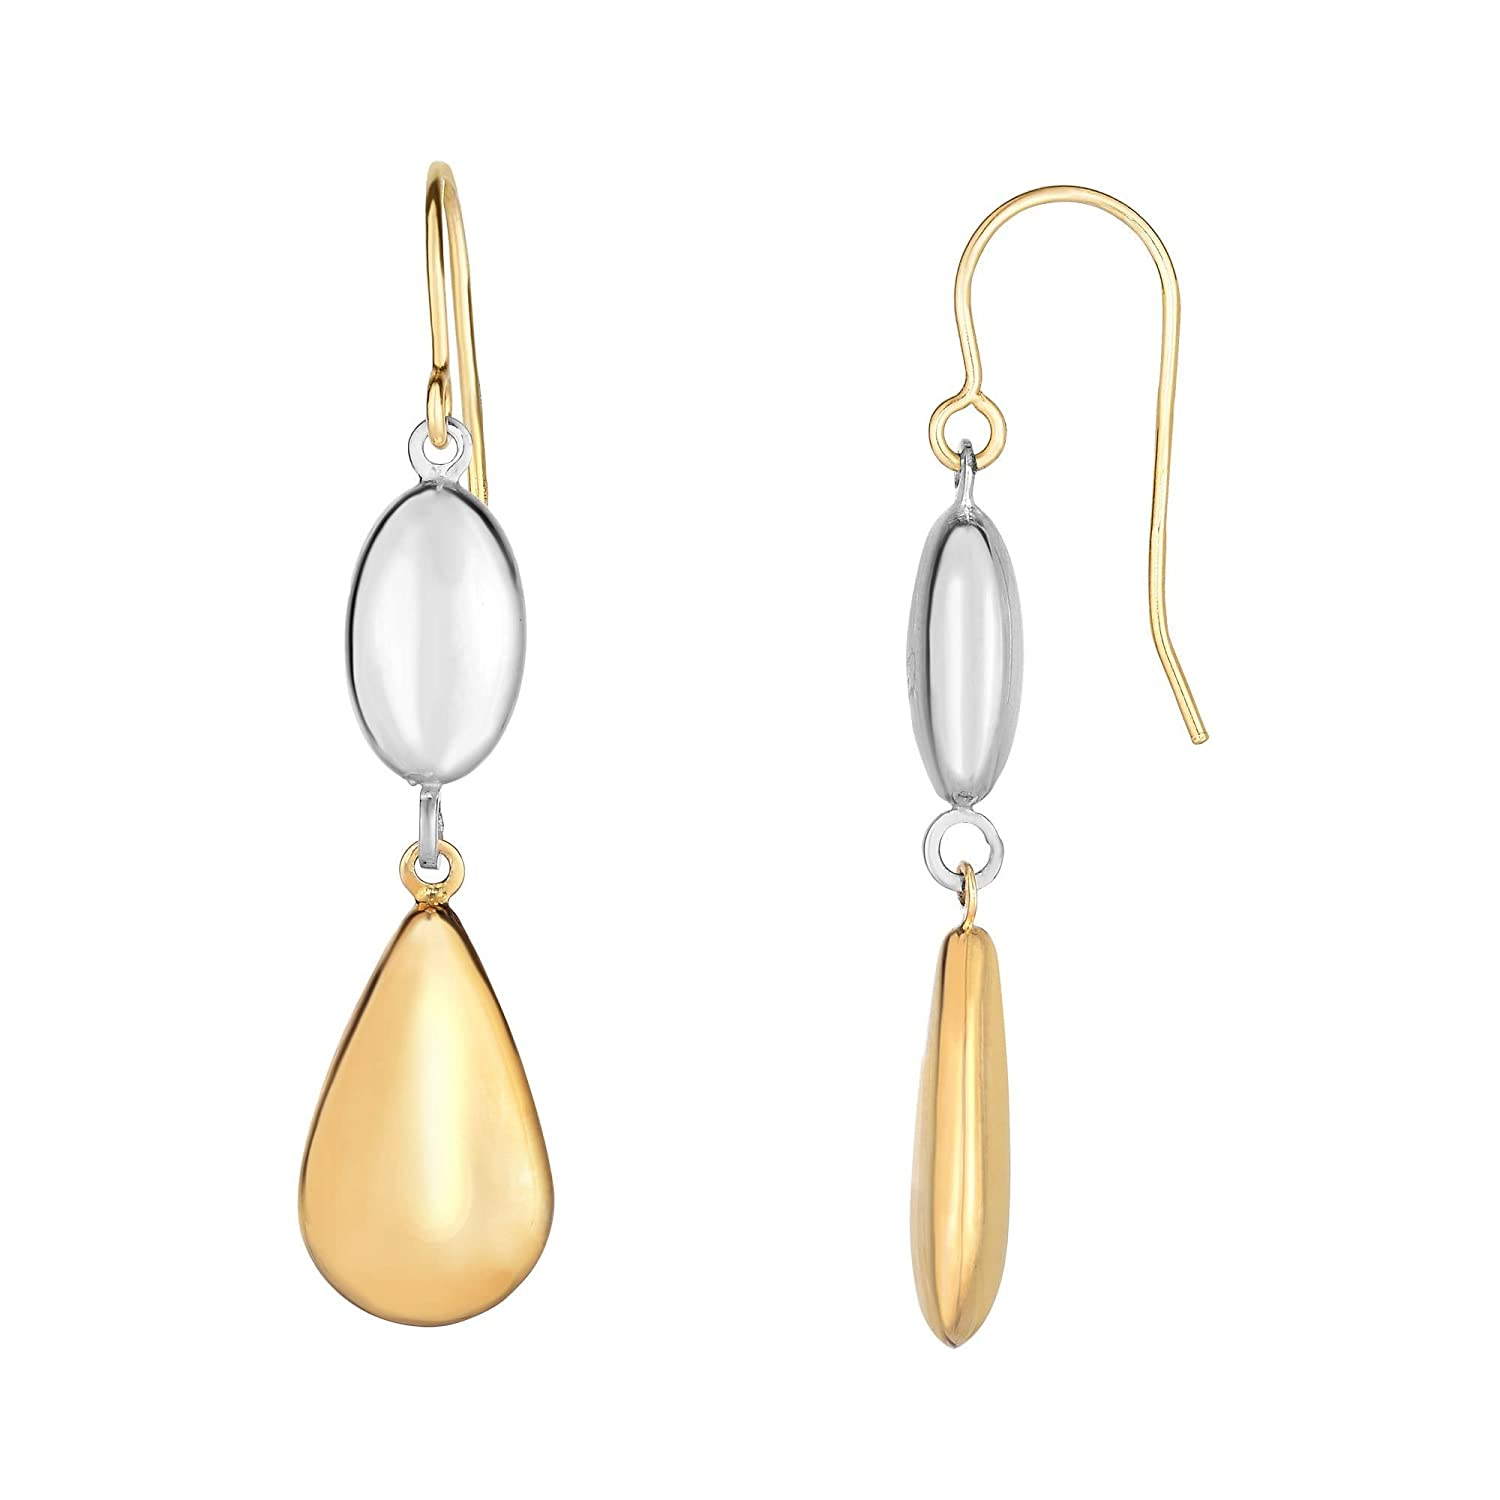 10K Yellow and White Gold 38X8.5mm Shiny White Puffed Marquis Shape+Yellow Puffed Teardrop Drop Earring with Euro Wire Clasp